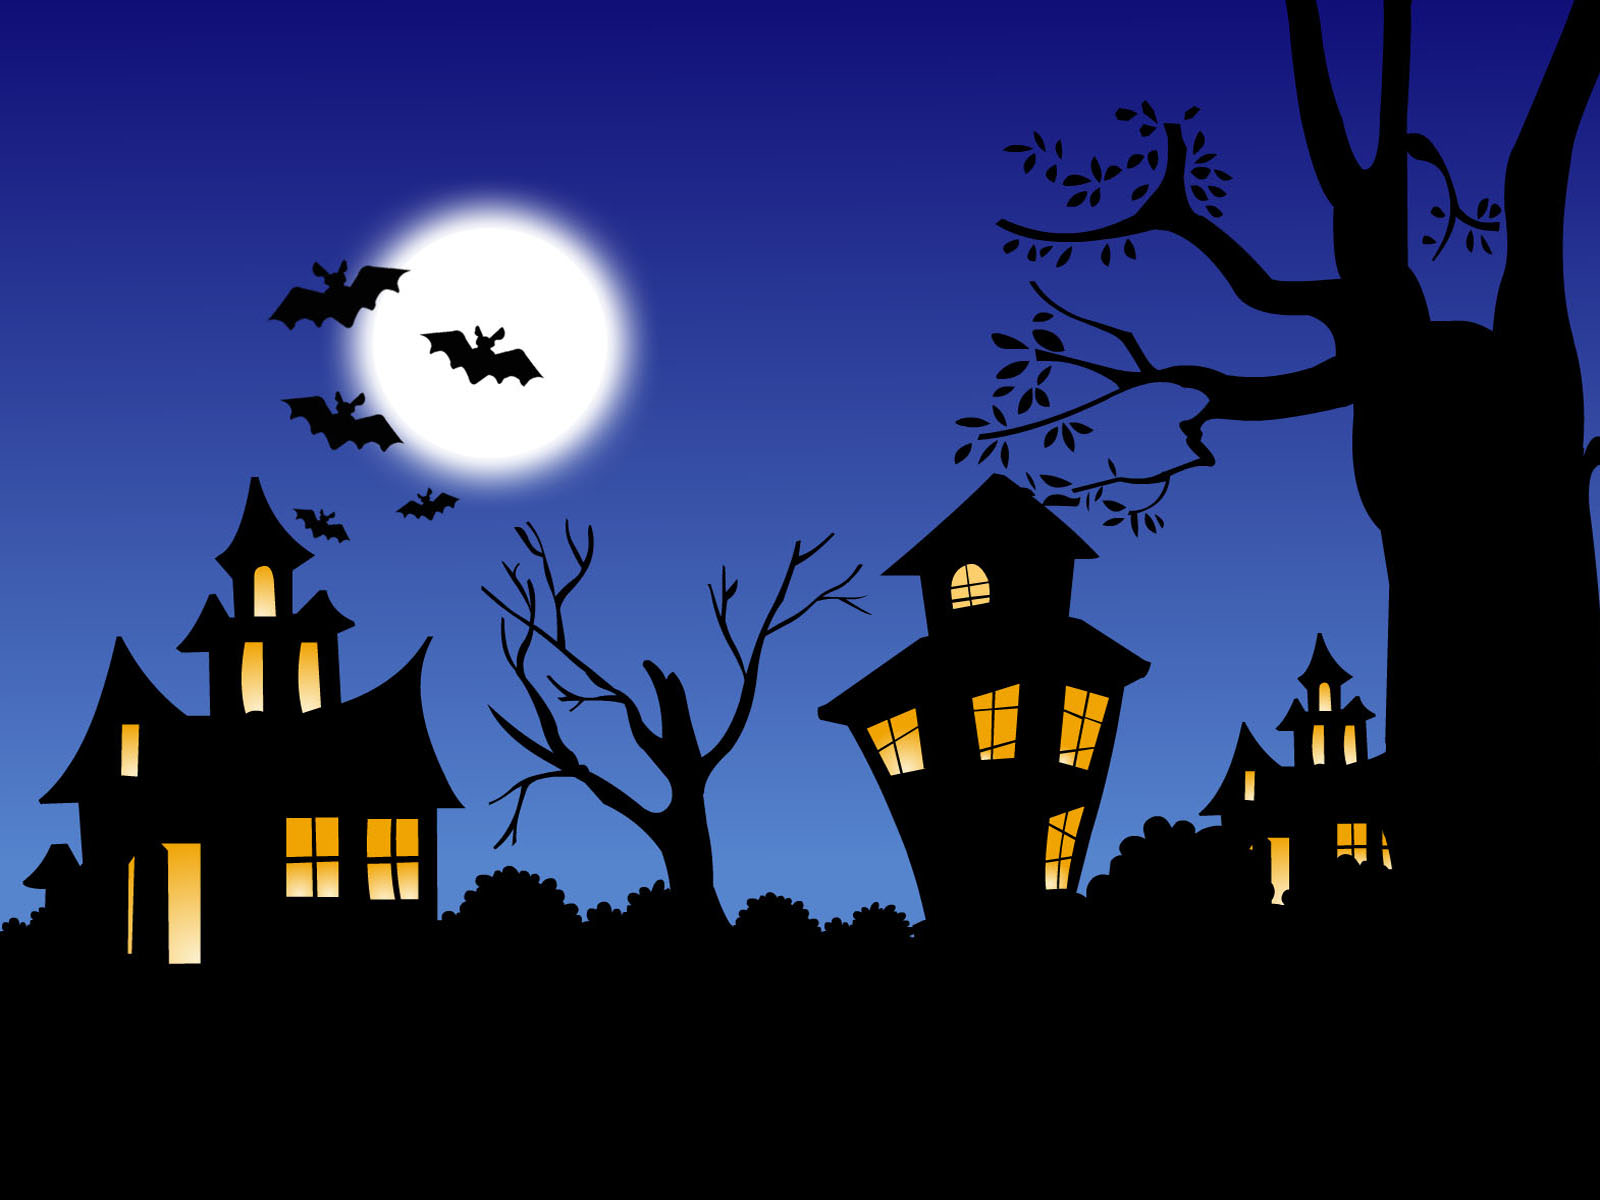 the daily suse: halloween trivia that tricks and treats; goblins and